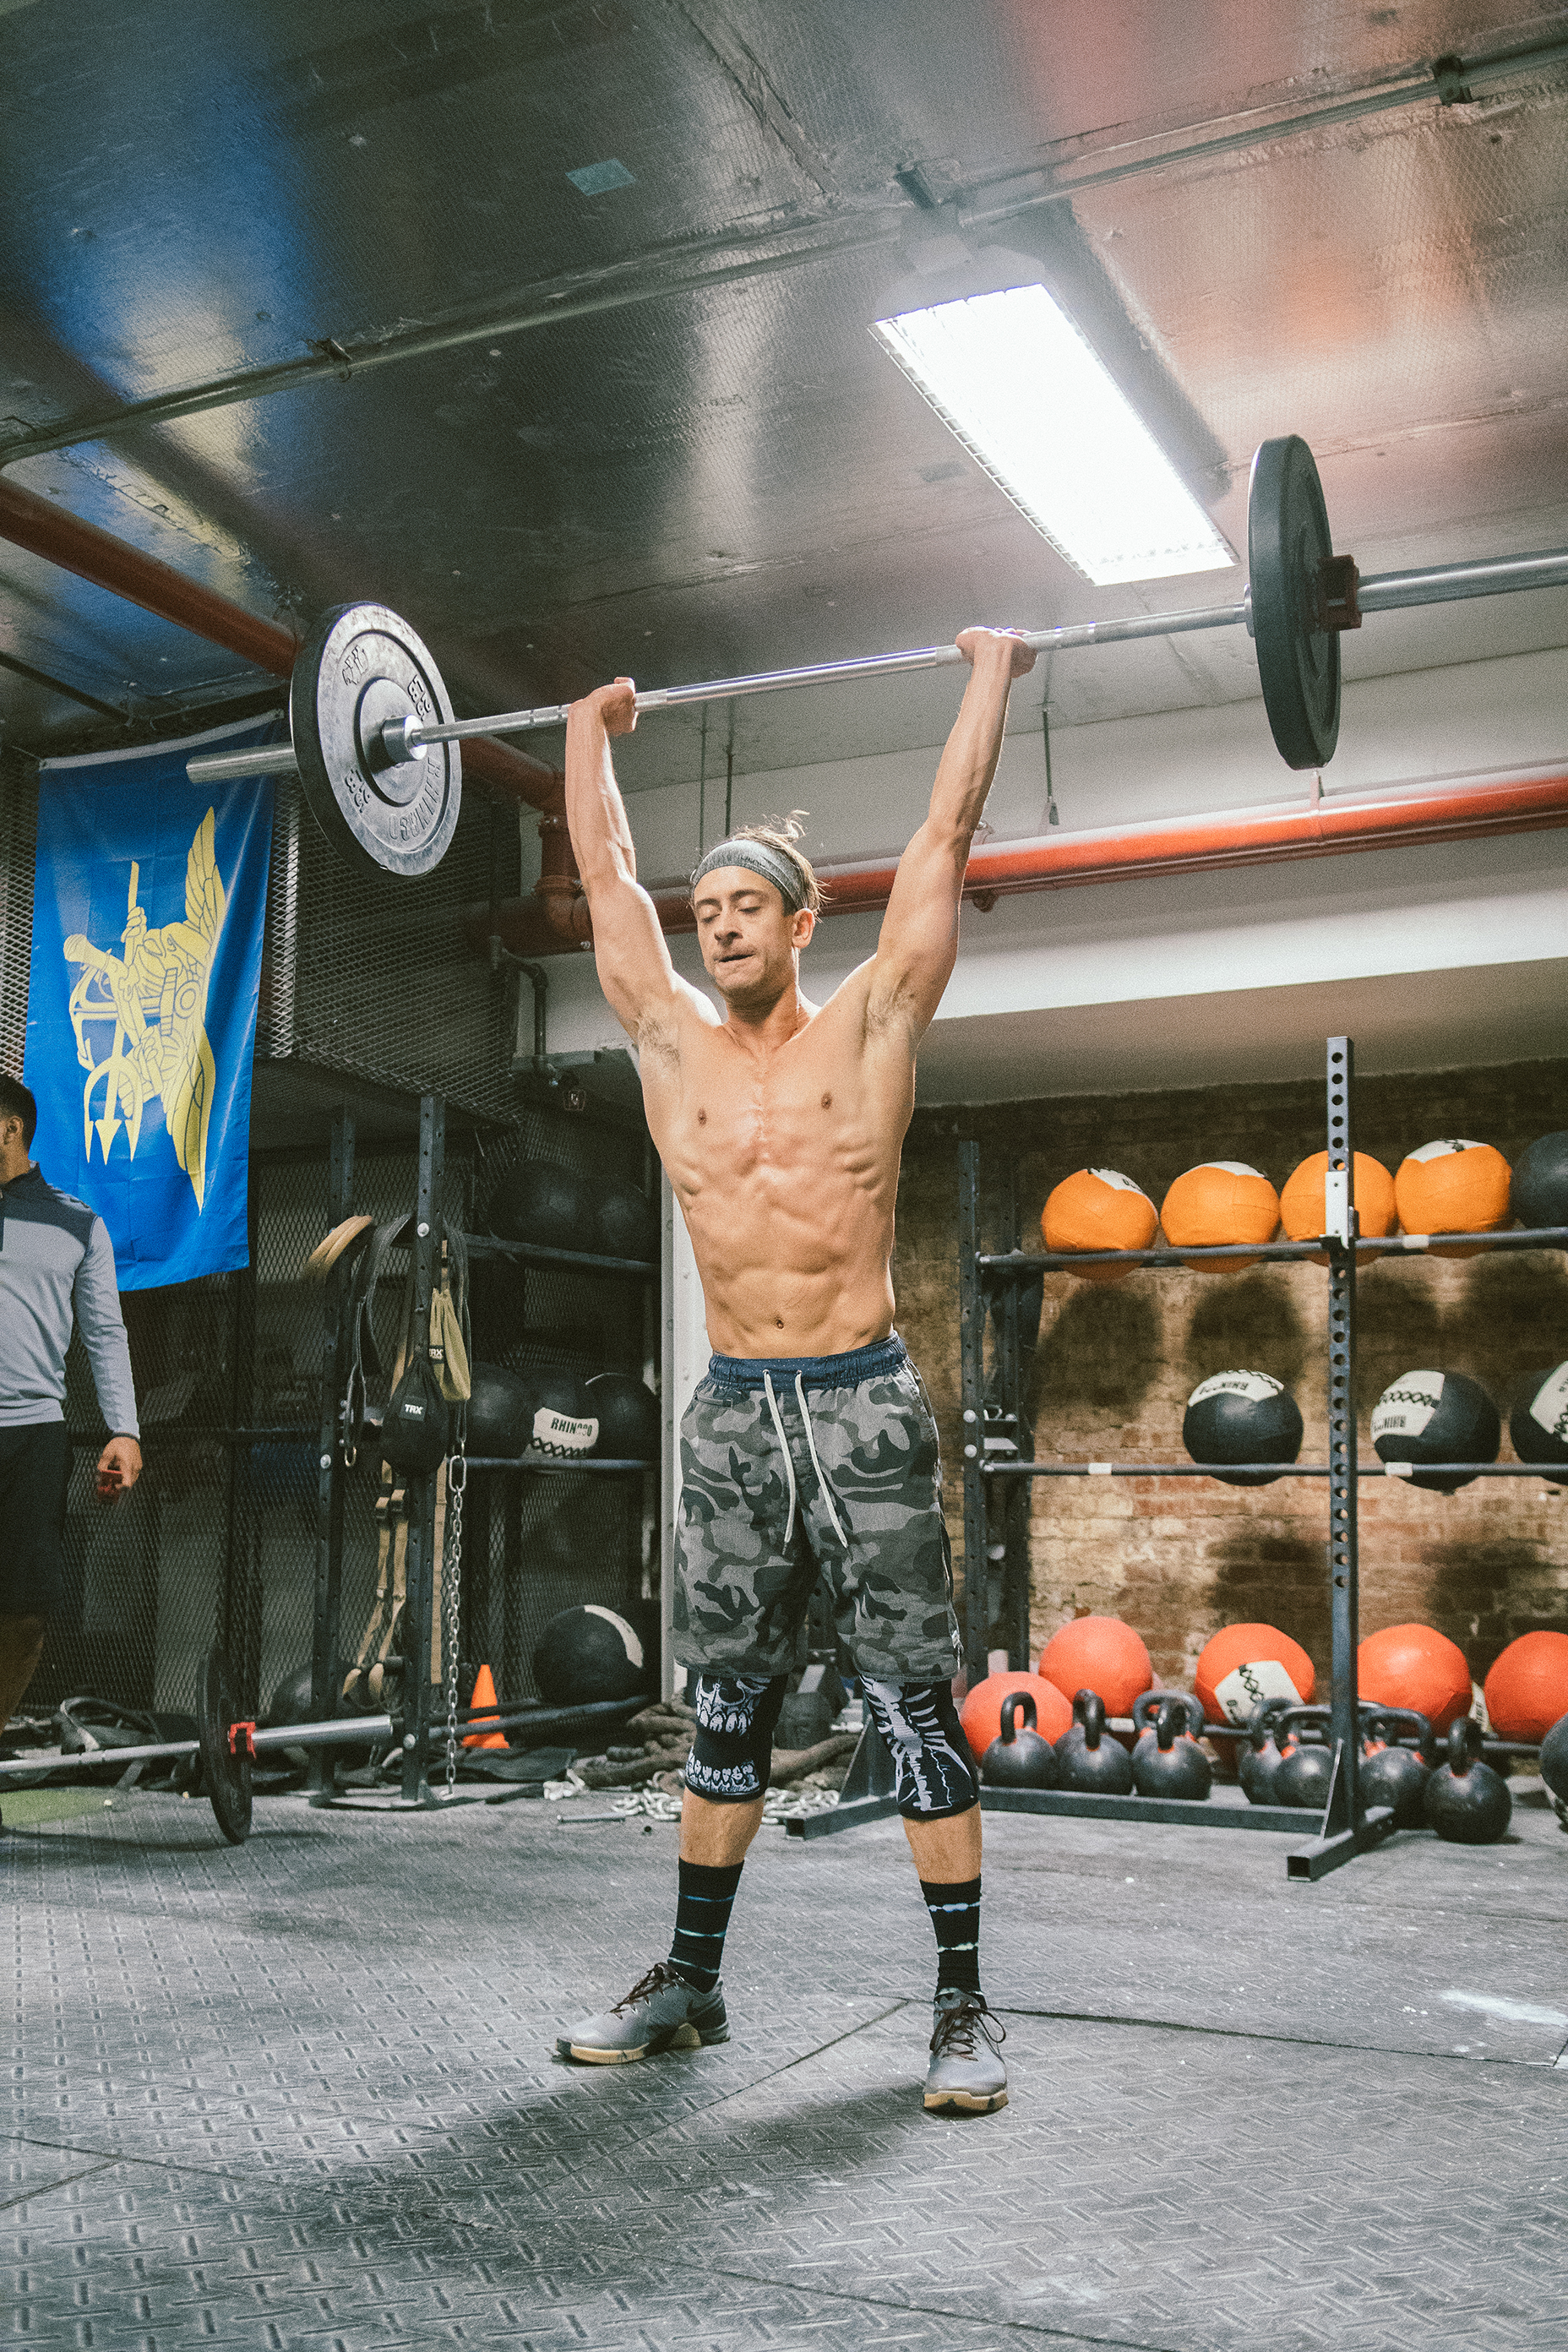 CrossFit Union Strong 17.5 079 20170325.jpg